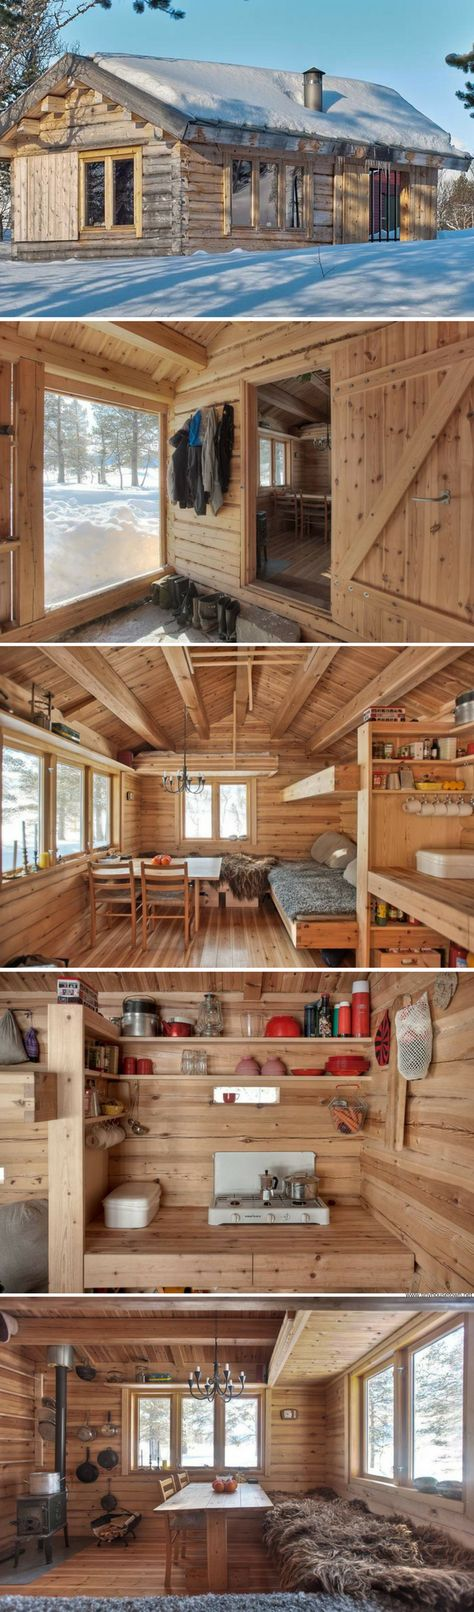 16 best Un toit images on Pinterest Small homes, Small houses